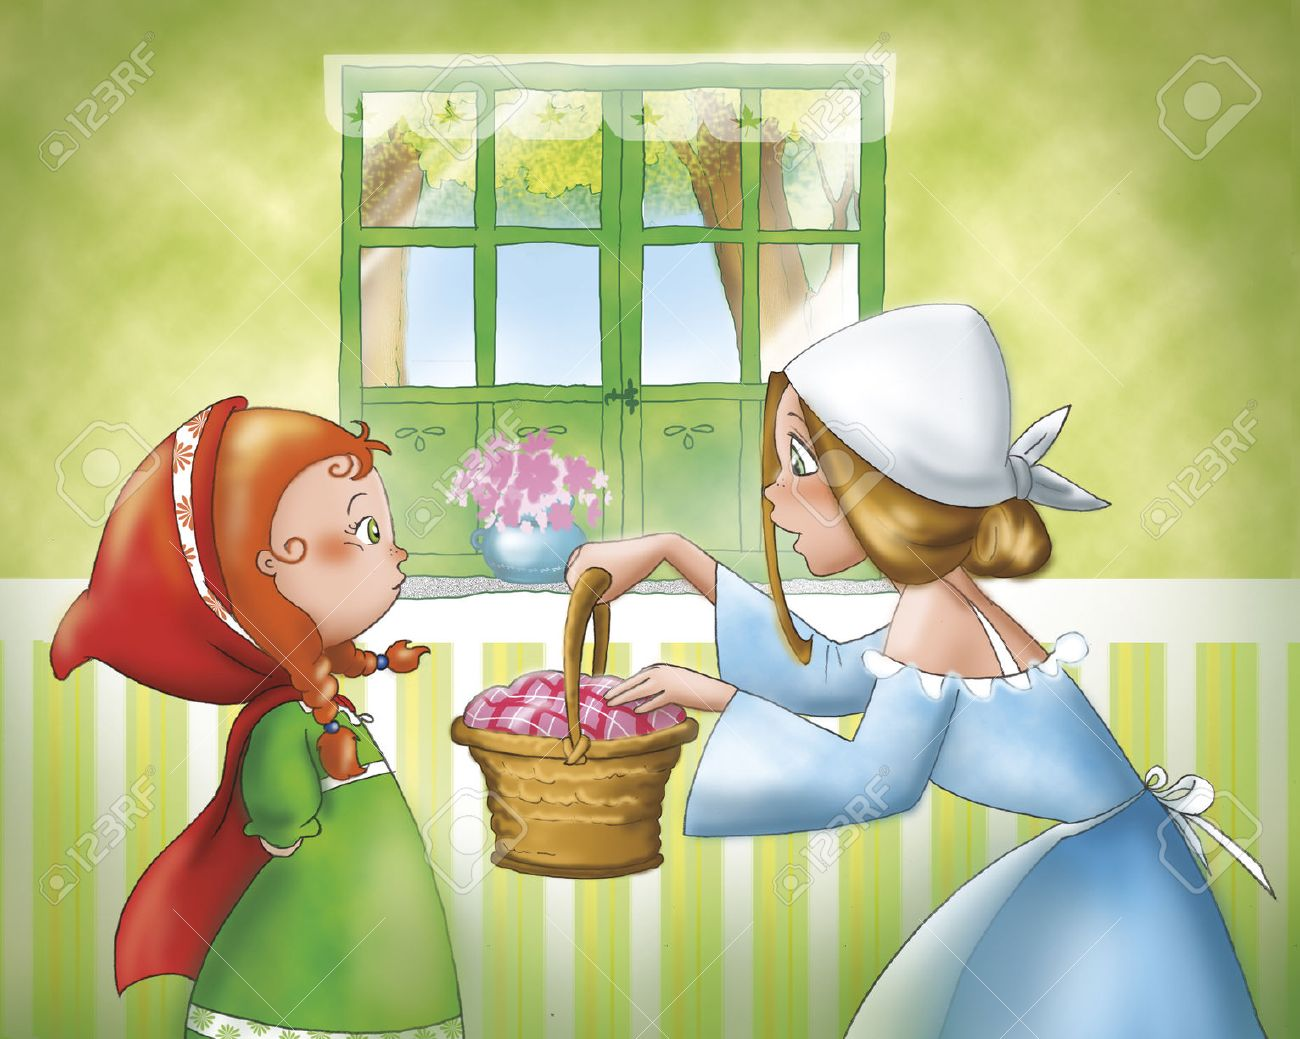 Little Red Riding Hood and her mom - 42035513